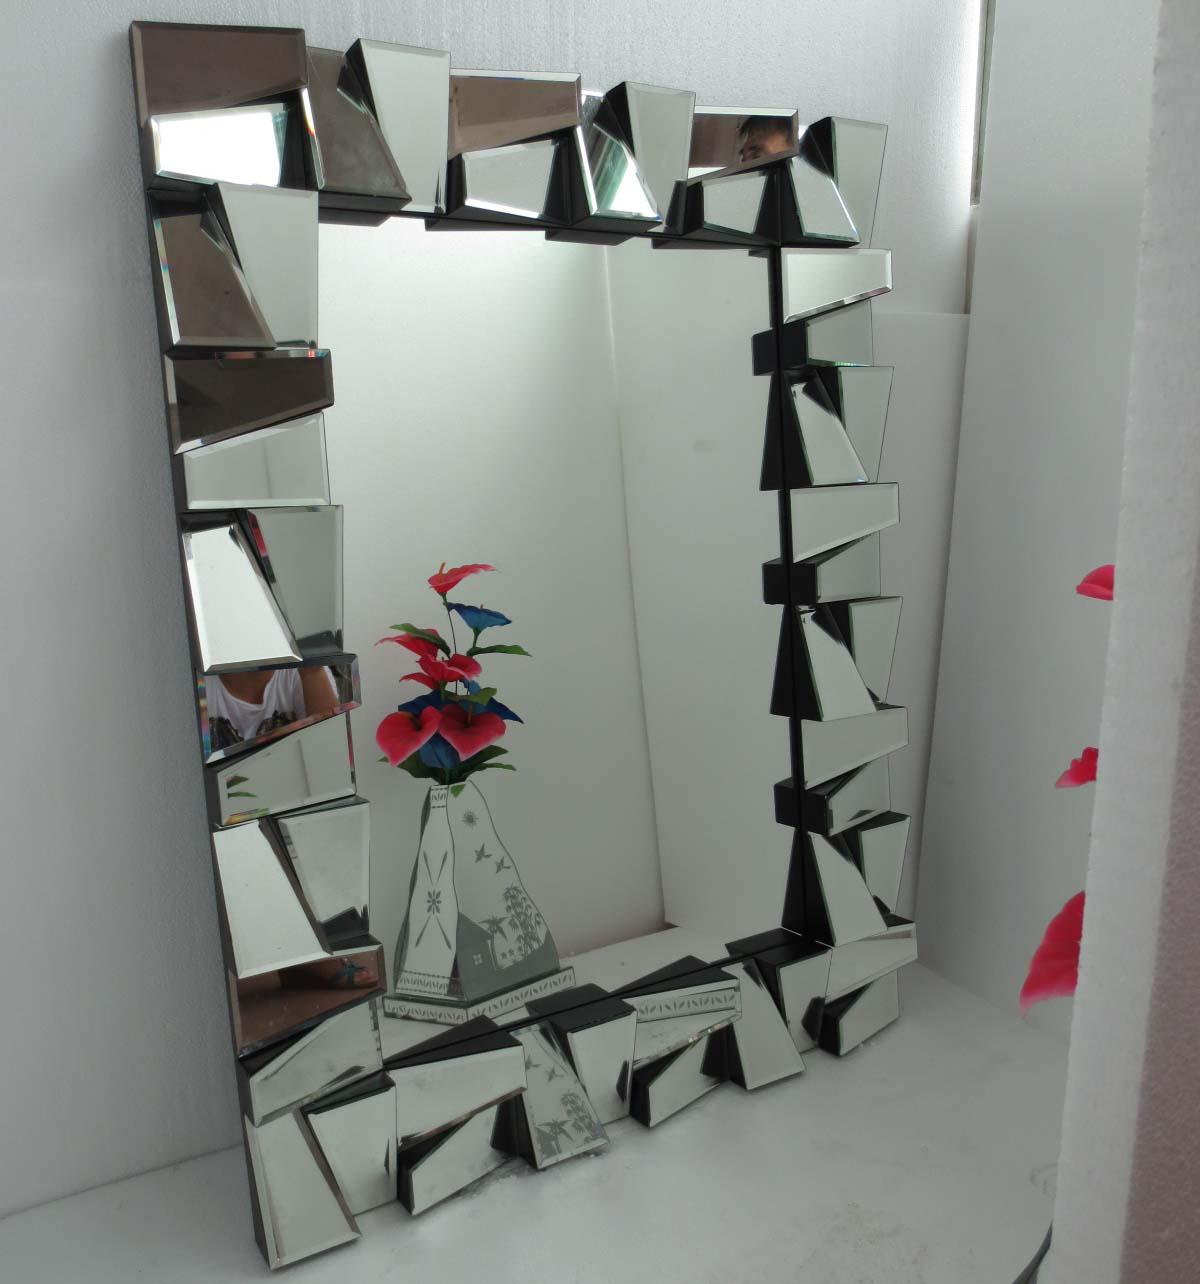 Mr 201389 square facet frame 3d wall mirror inexpensive mirrors see larger image amipublicfo Images